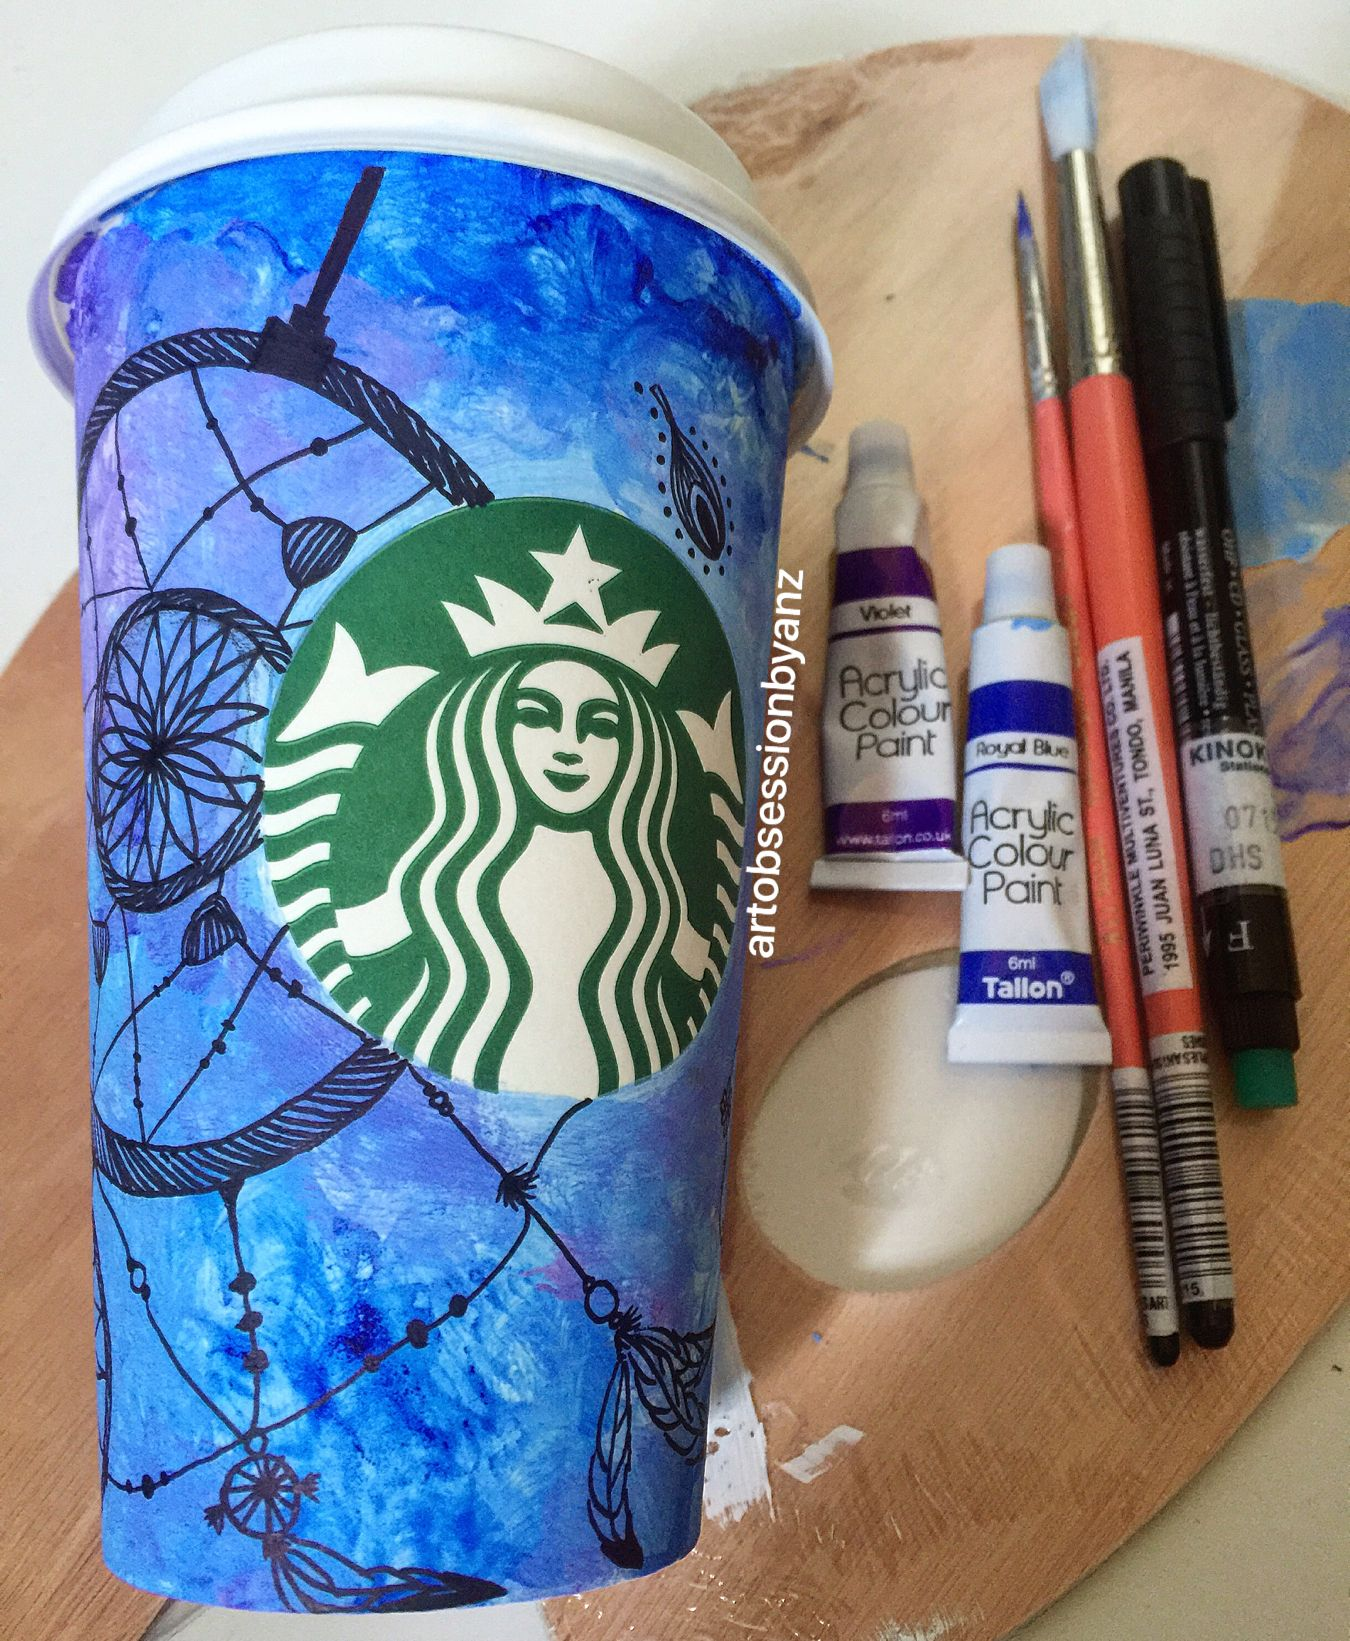 There Are No Rules In Art Just Creativity Sbucks Obsession Cup 08 Blue Dreamcatcher Starbucks Starbuckscoffee Starbucks Art Starbucks Coffee Doodles